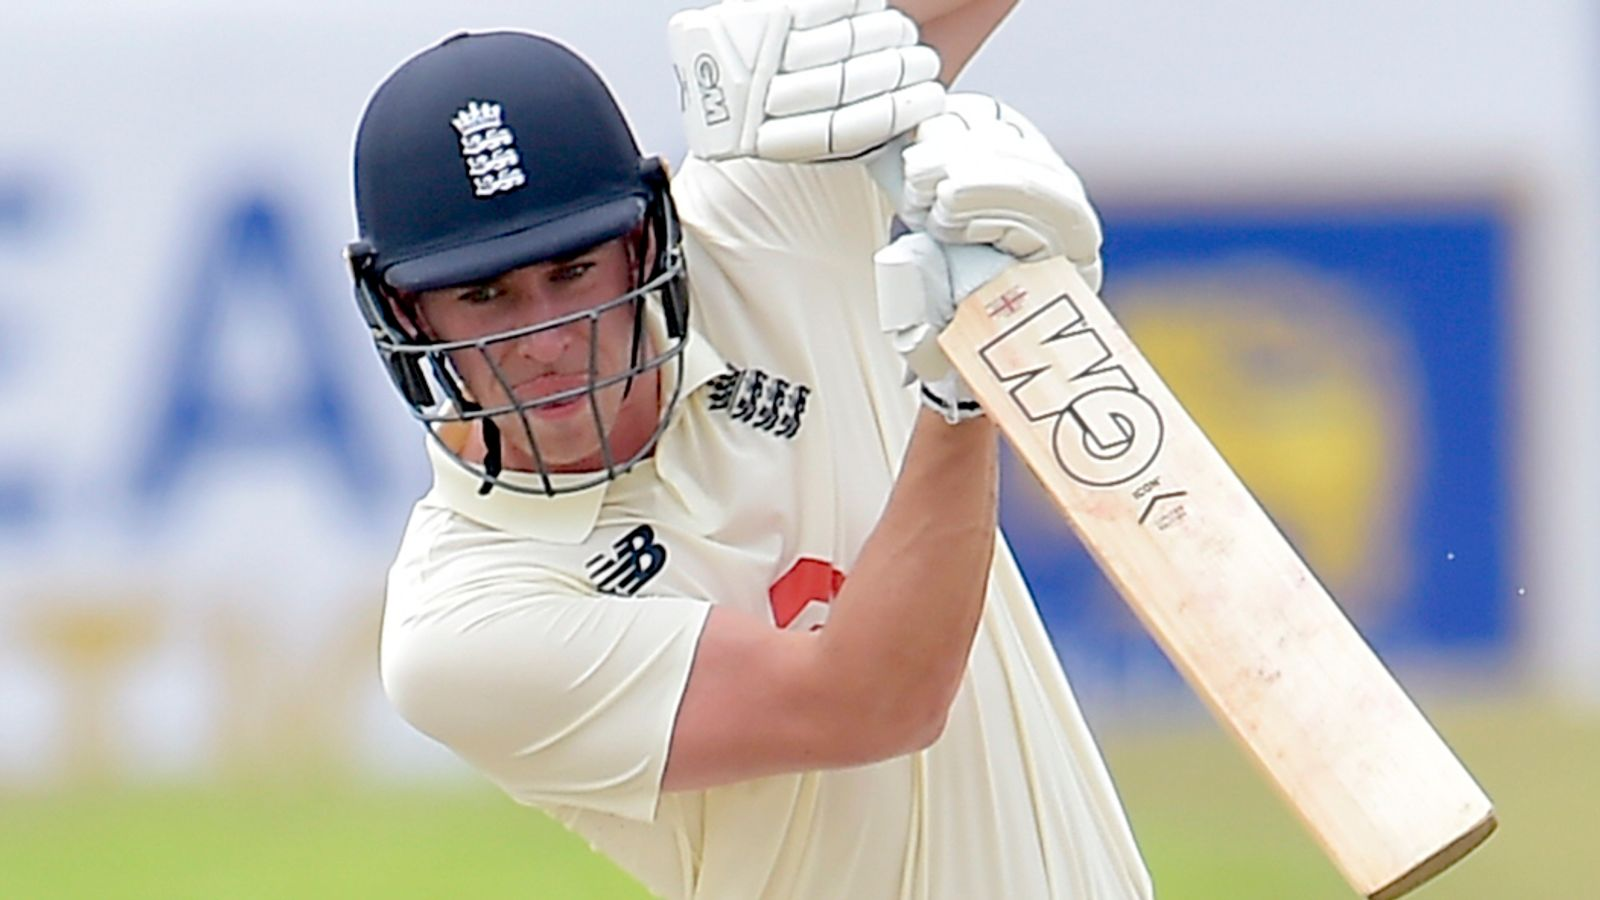 England seal seven-wicket win over Sri Lanka in first Test after reaching victory target of 74 in Galle